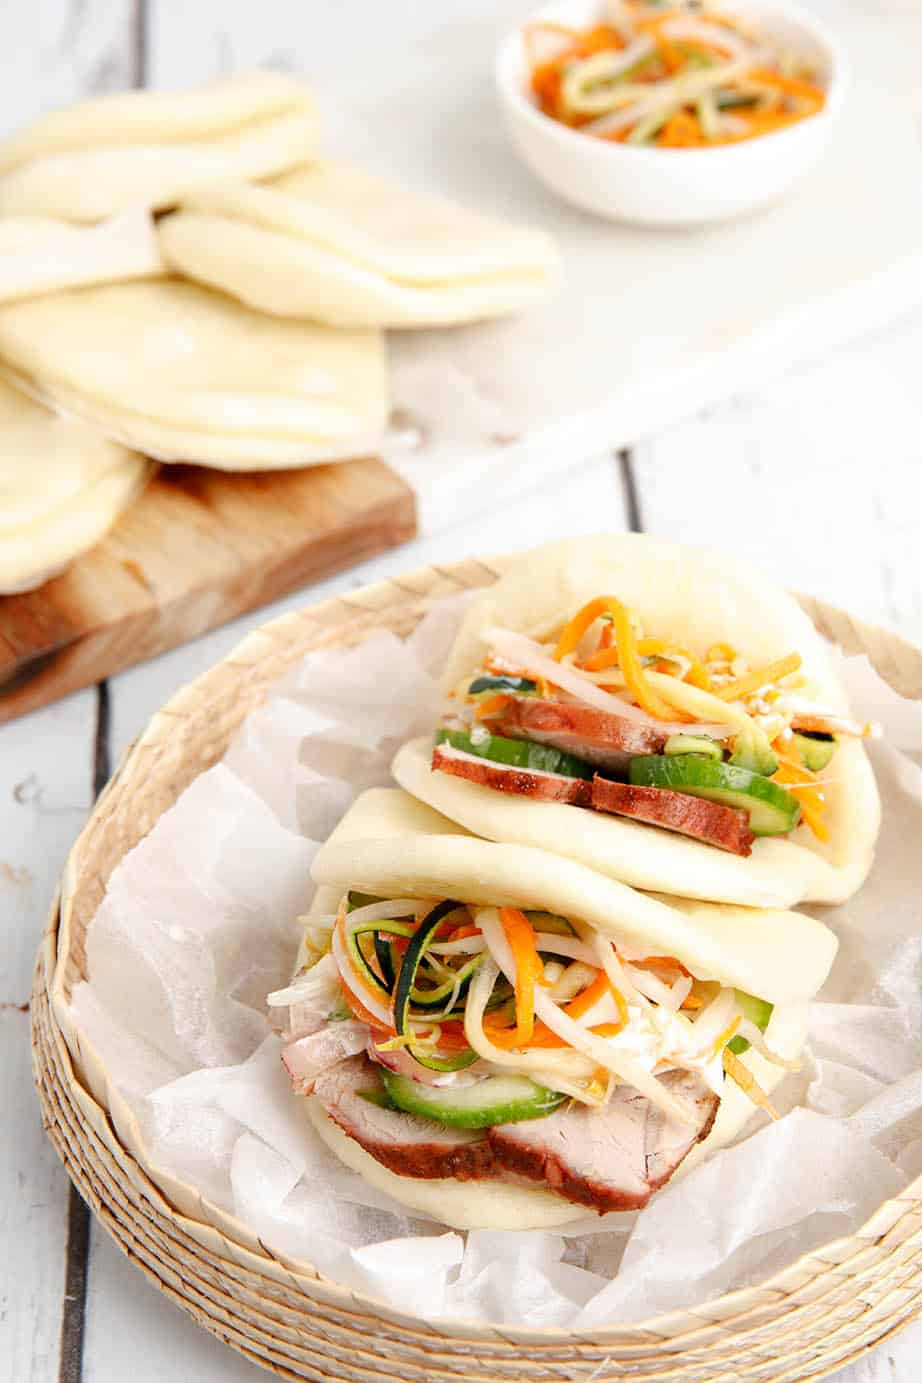 Char Siu Bao Bun filled with salad and pork